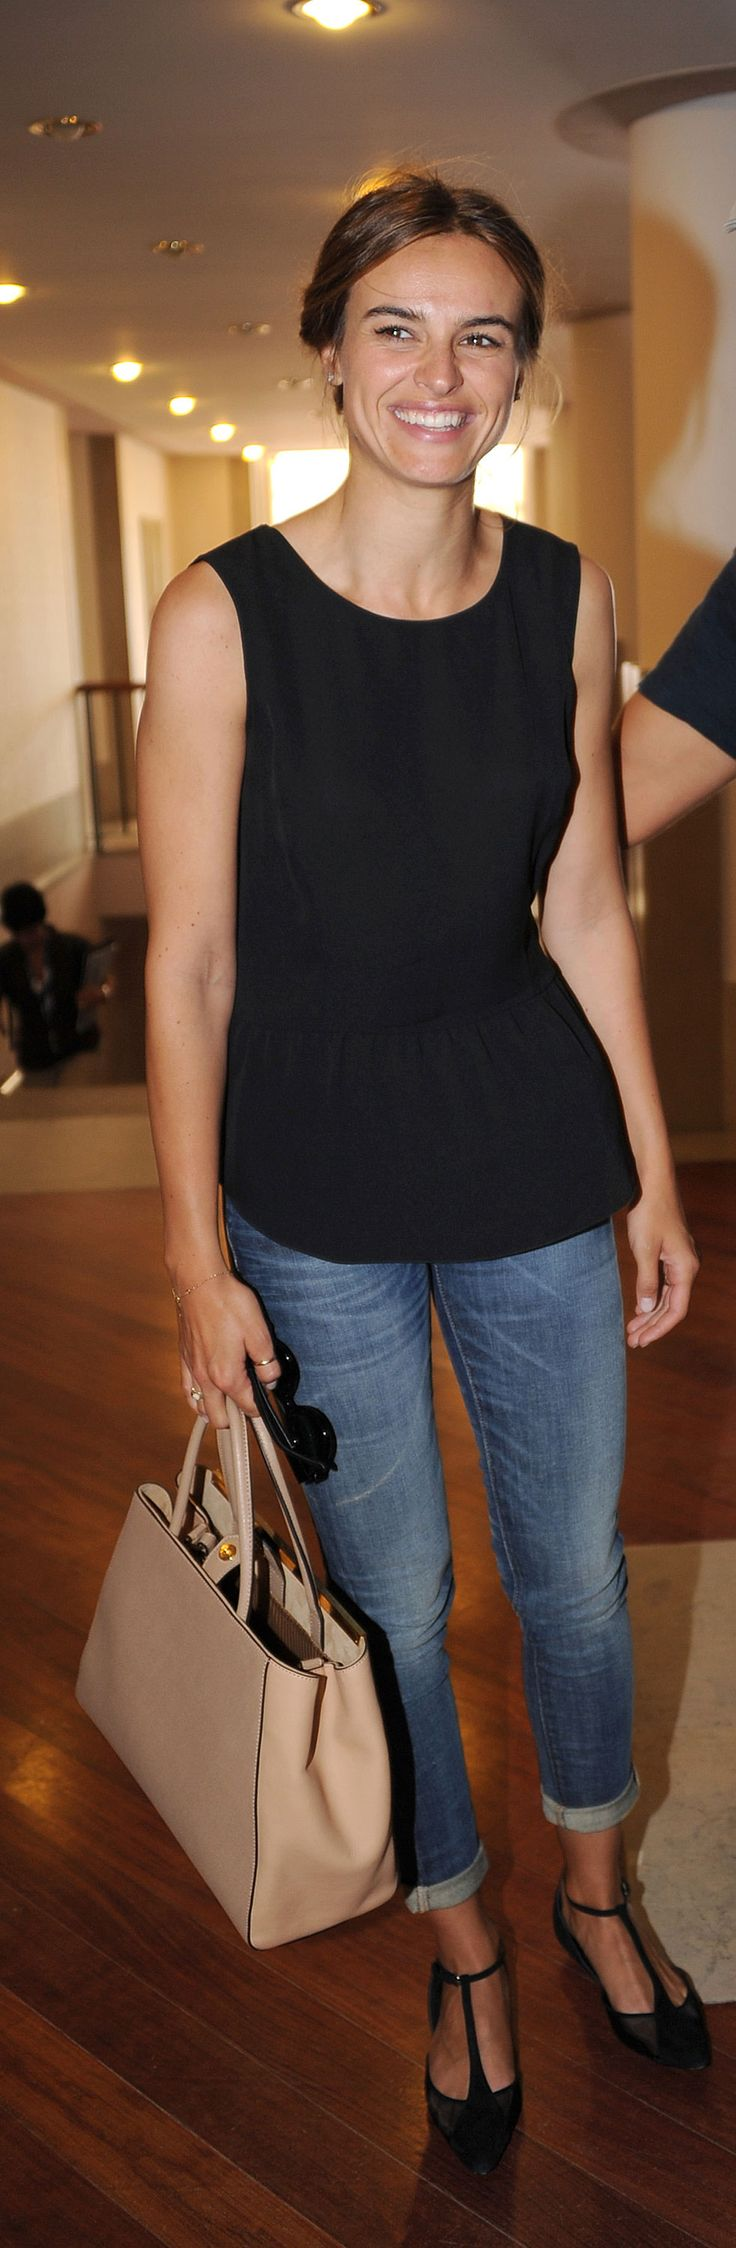 Kasia Smutniak donned a peplum top with cuffed jeans and T-strap flats for a sweet daytime look.